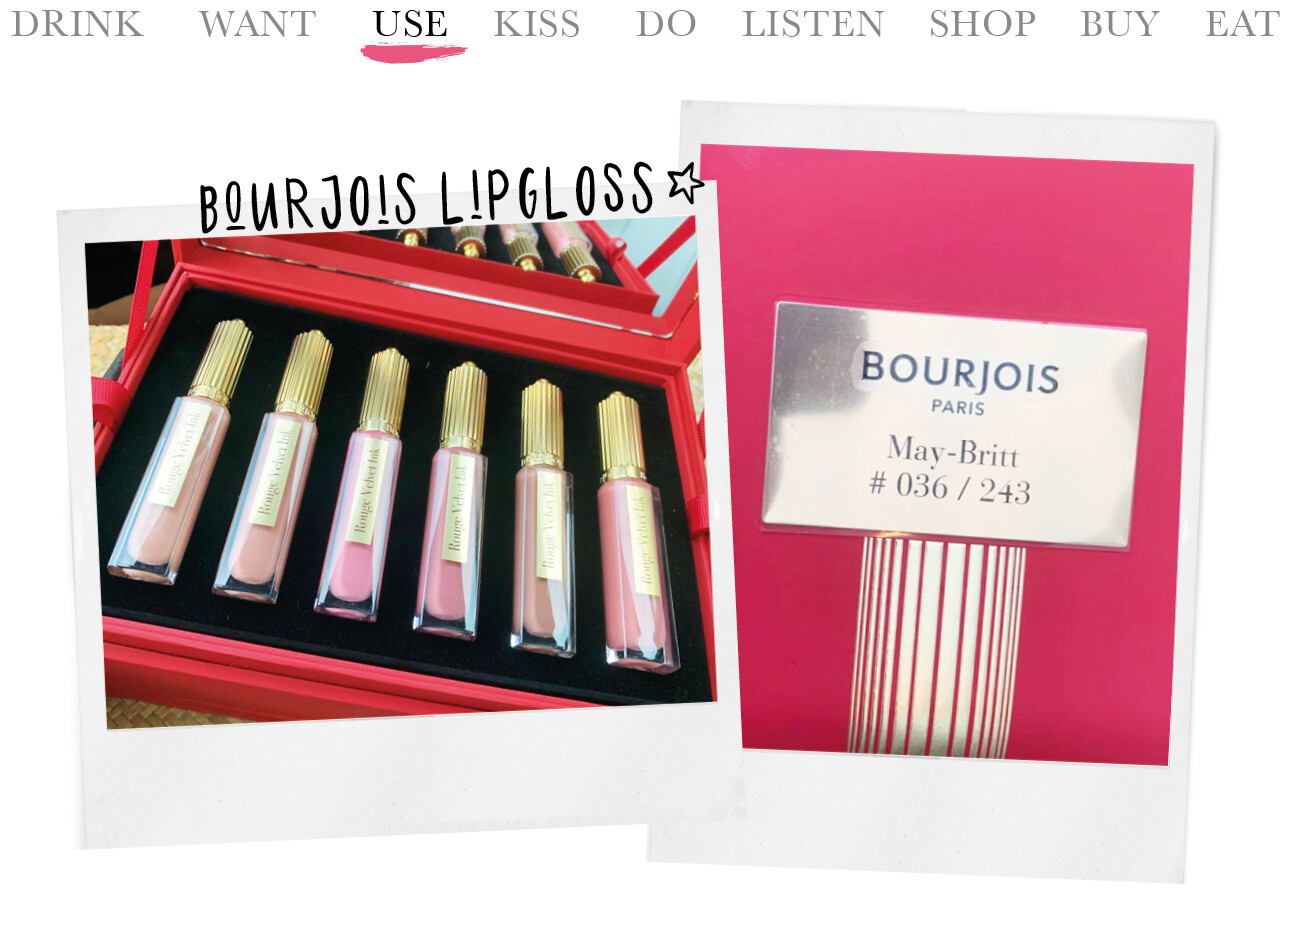 Today we…use Bourjois lipgloss